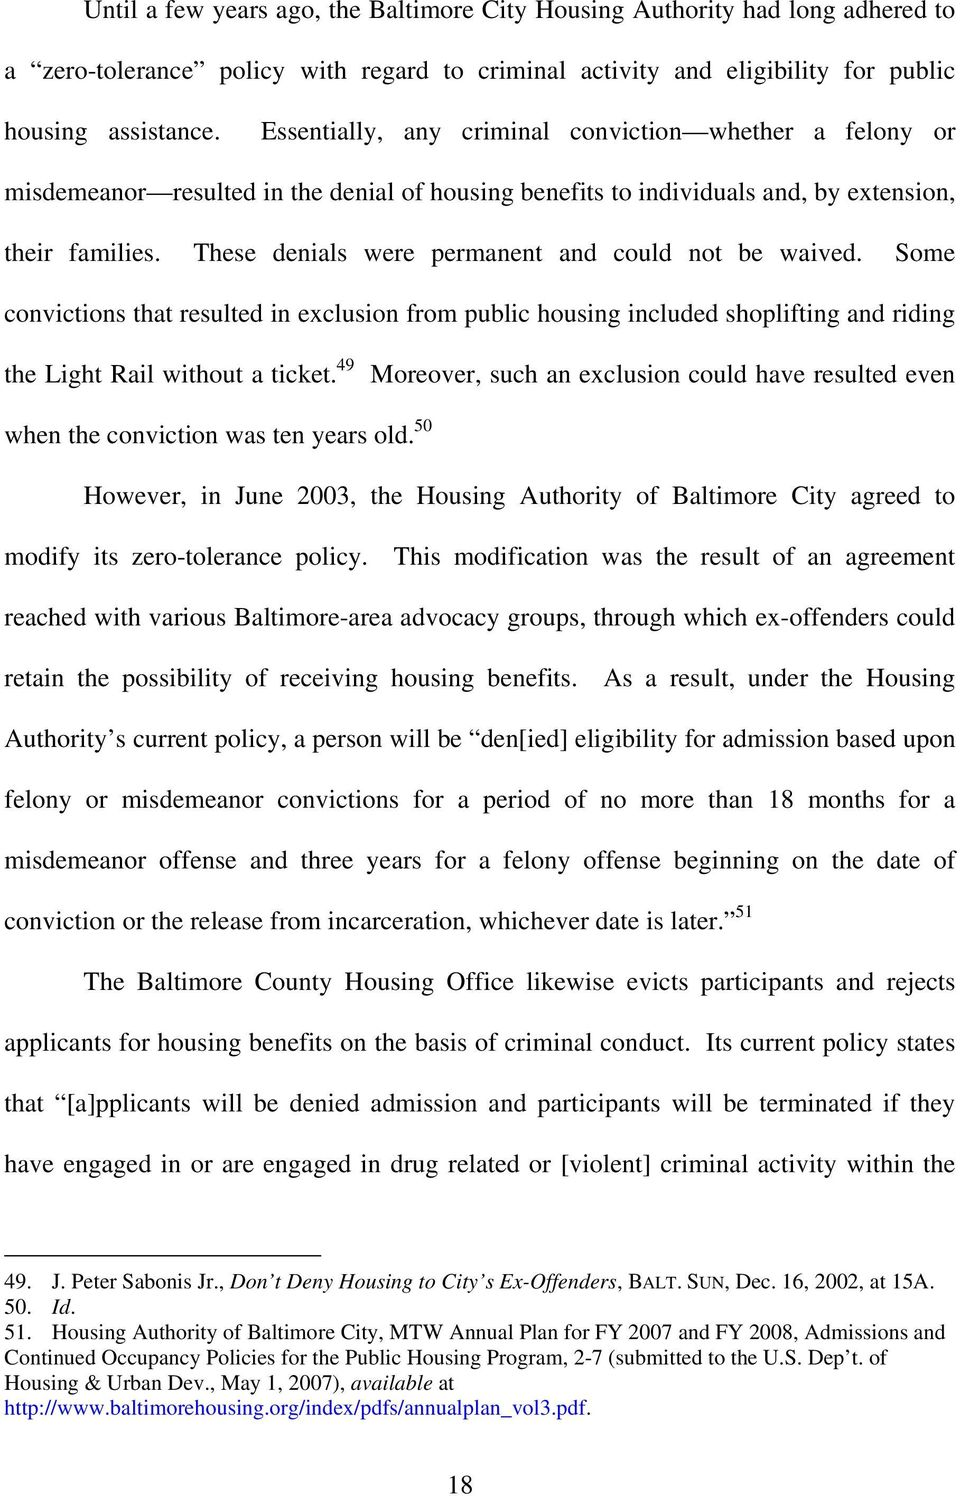 These denials were permanent and could not be waived. Some convictions that resulted in exclusion from public housing included shoplifting and riding the Light Rail without a ticket.